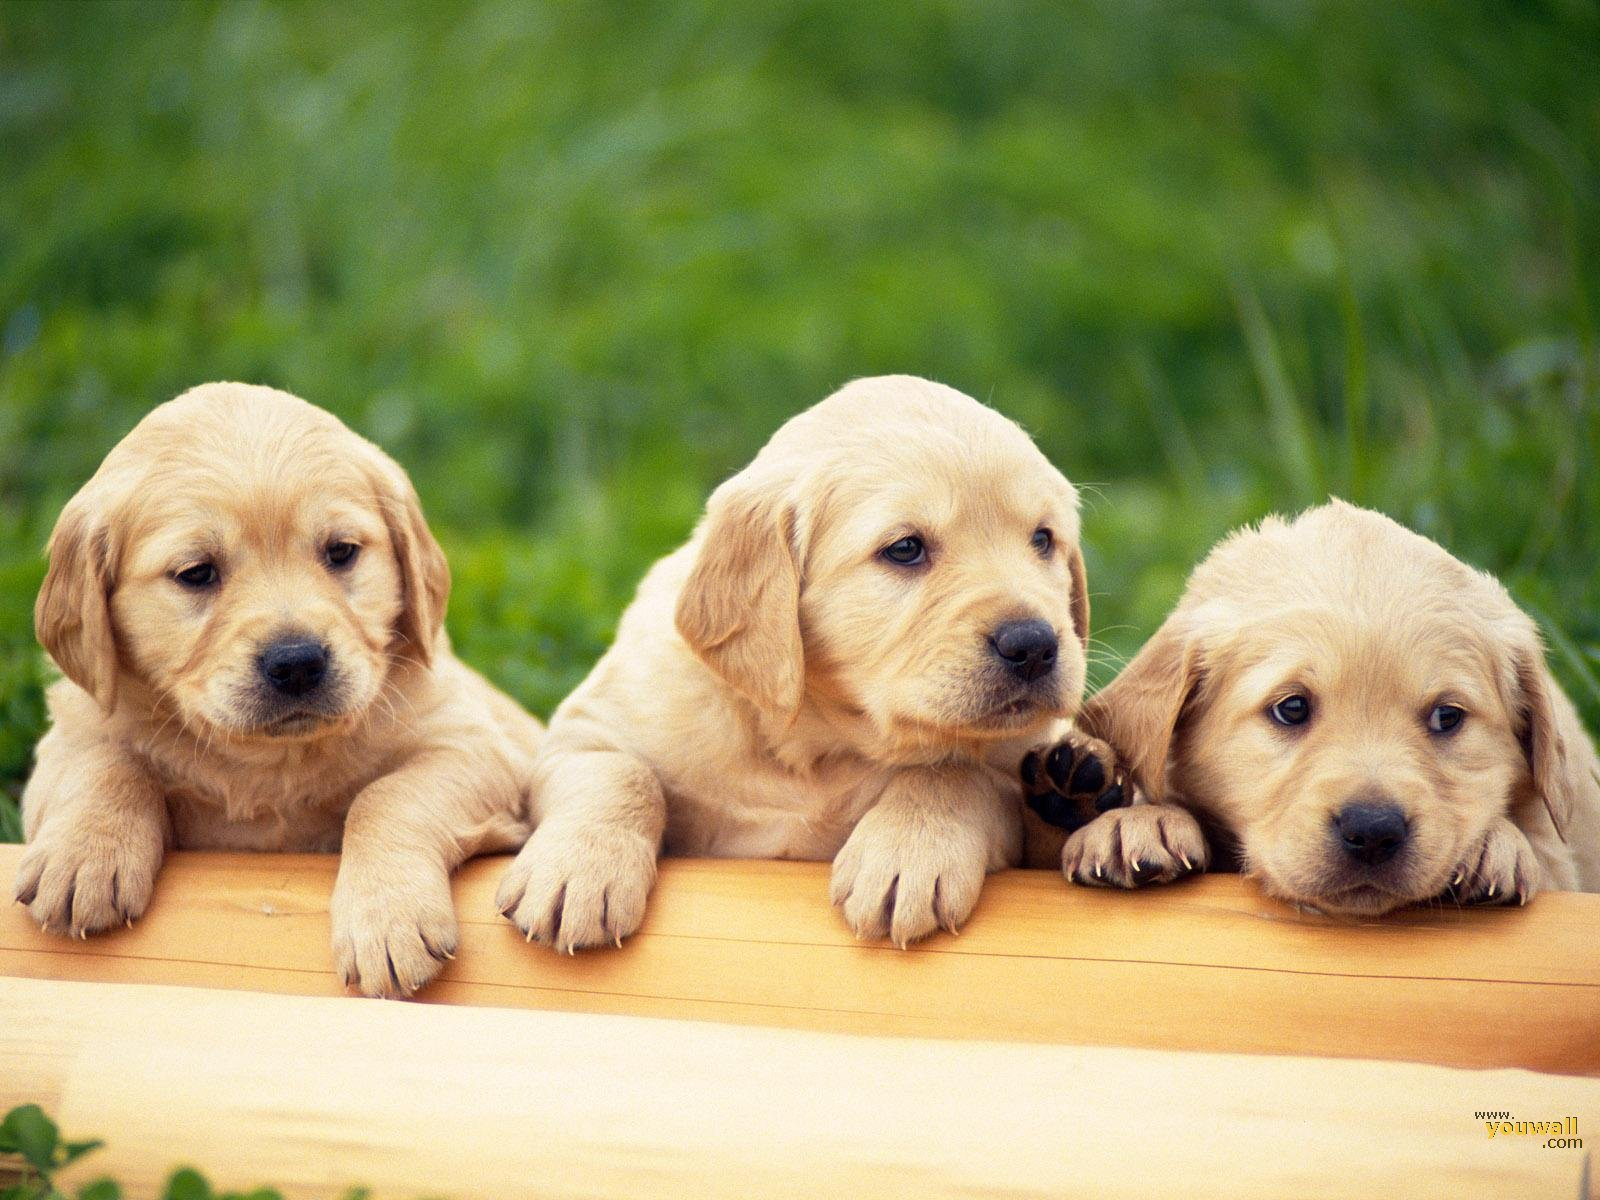 YouWall   Cute Dogs Wallpaper   wallpaperwallpapersfree wallpaper 1600x1200